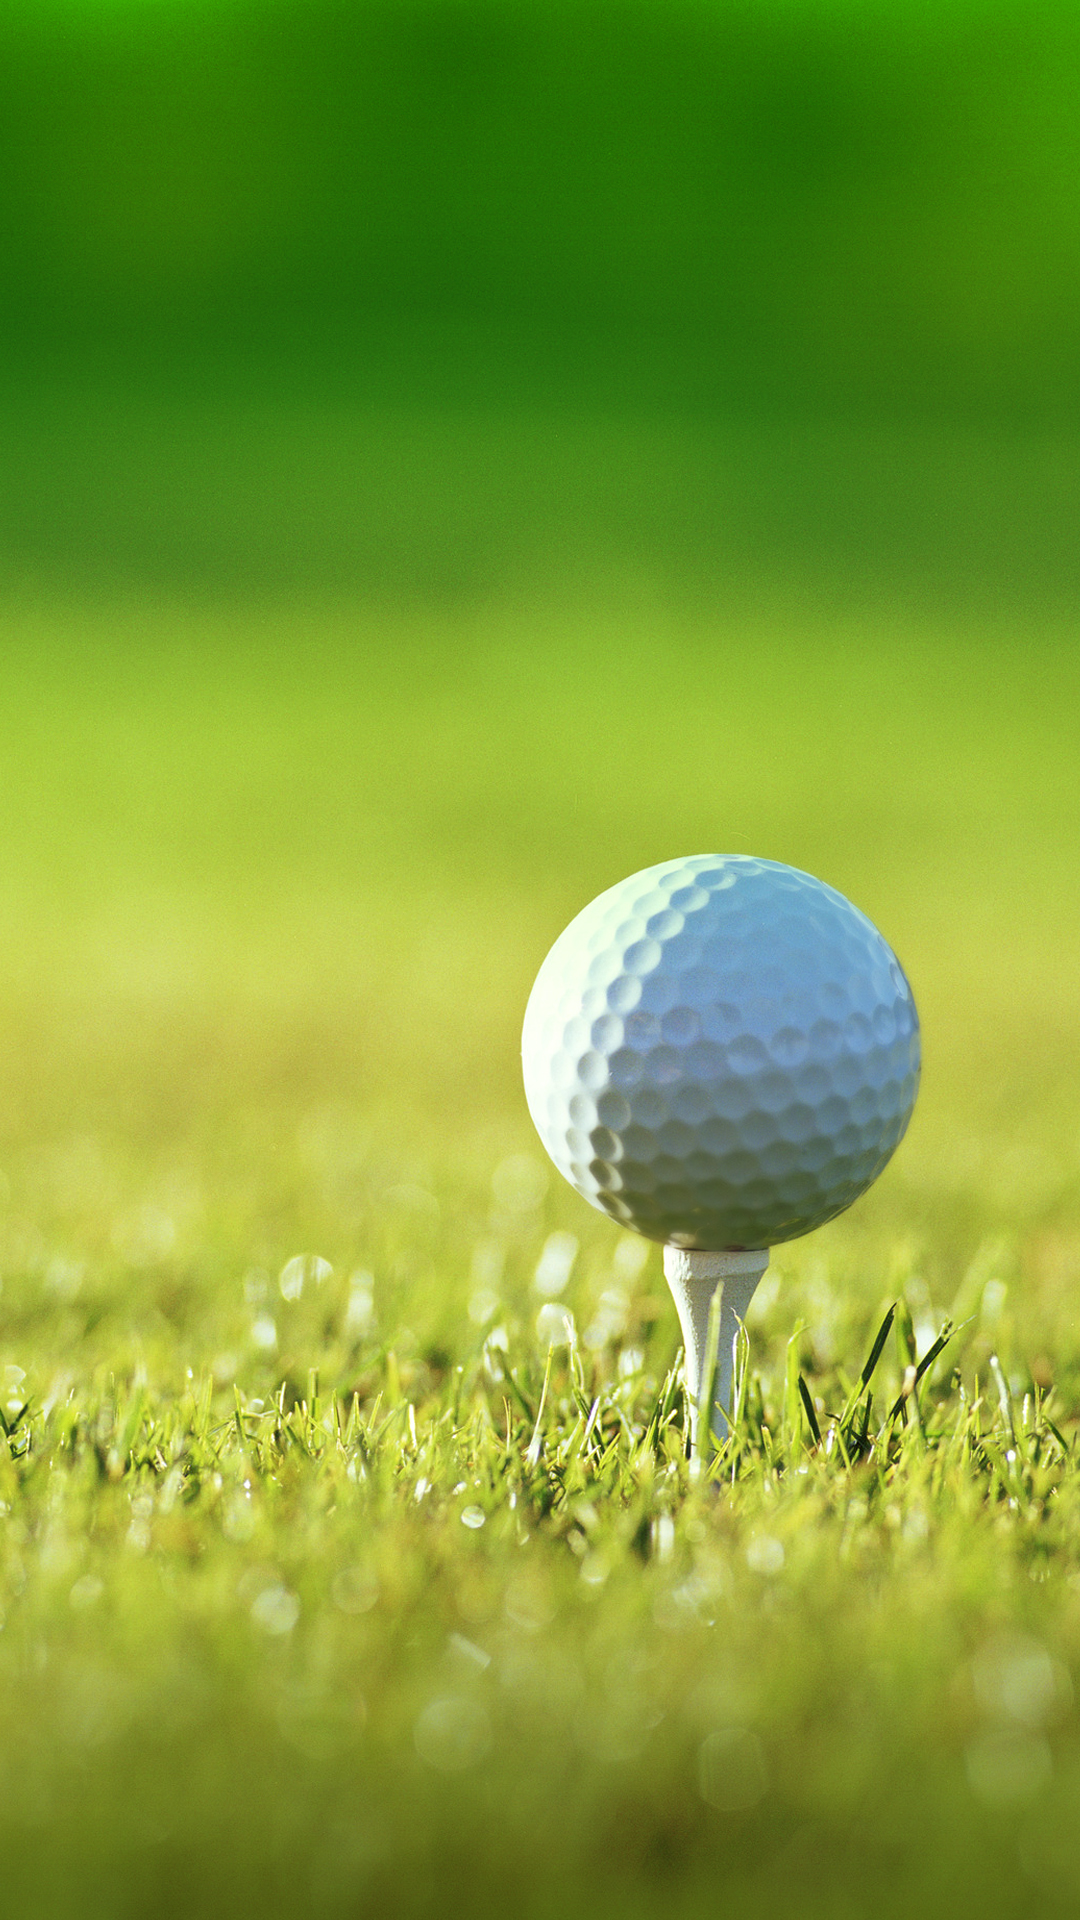 Free Download Wallpaper For Computer Golf For Lg Nexus Hd